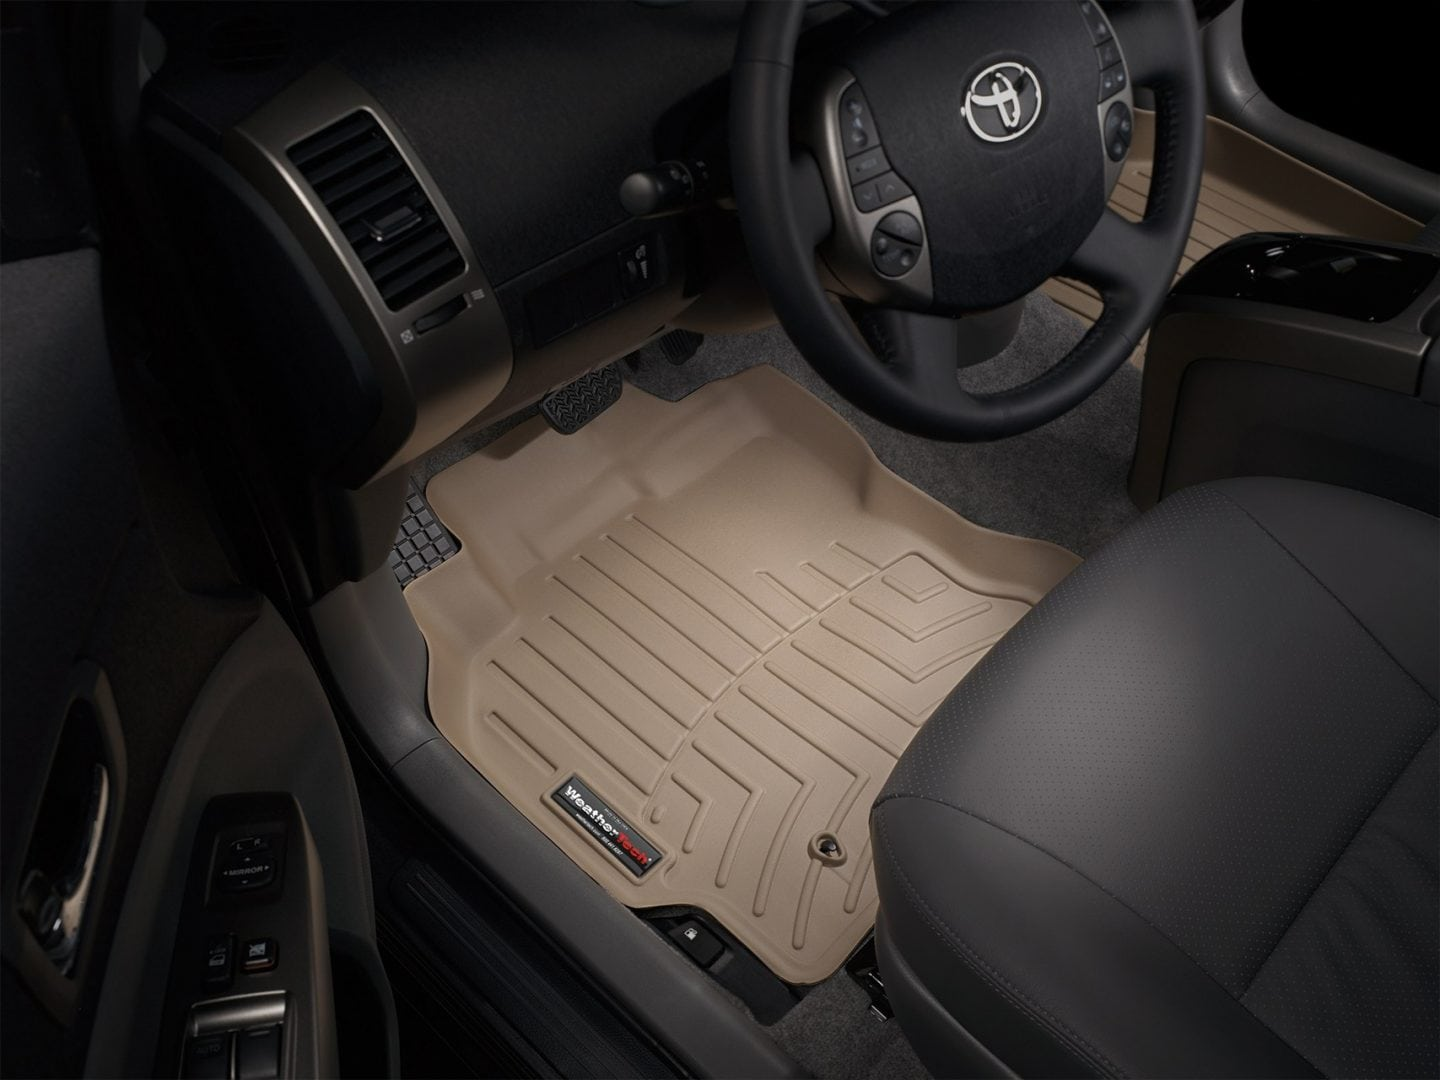 Weathertech door mats - Want